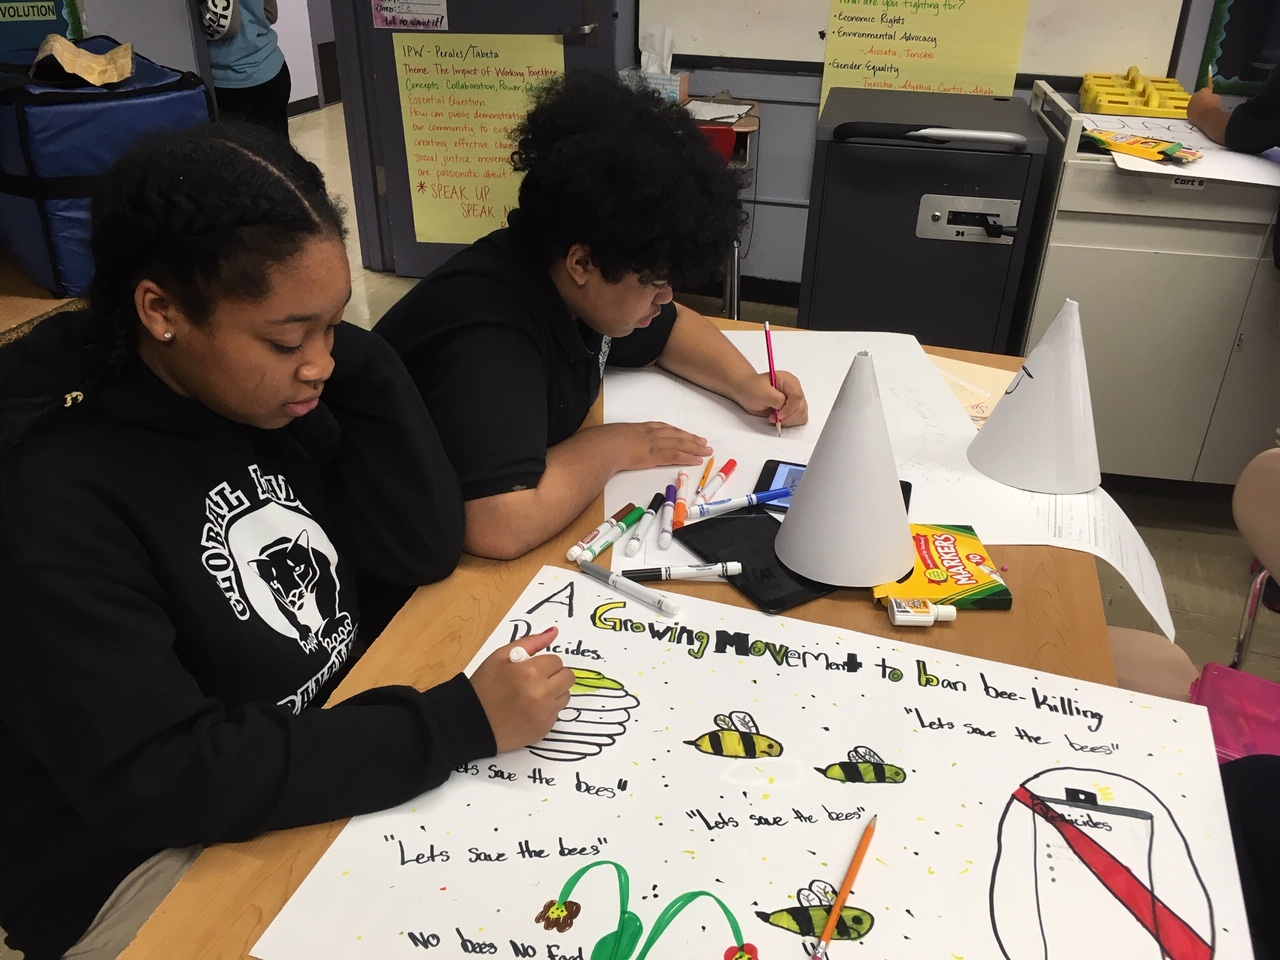 Students working on a class assignment together.